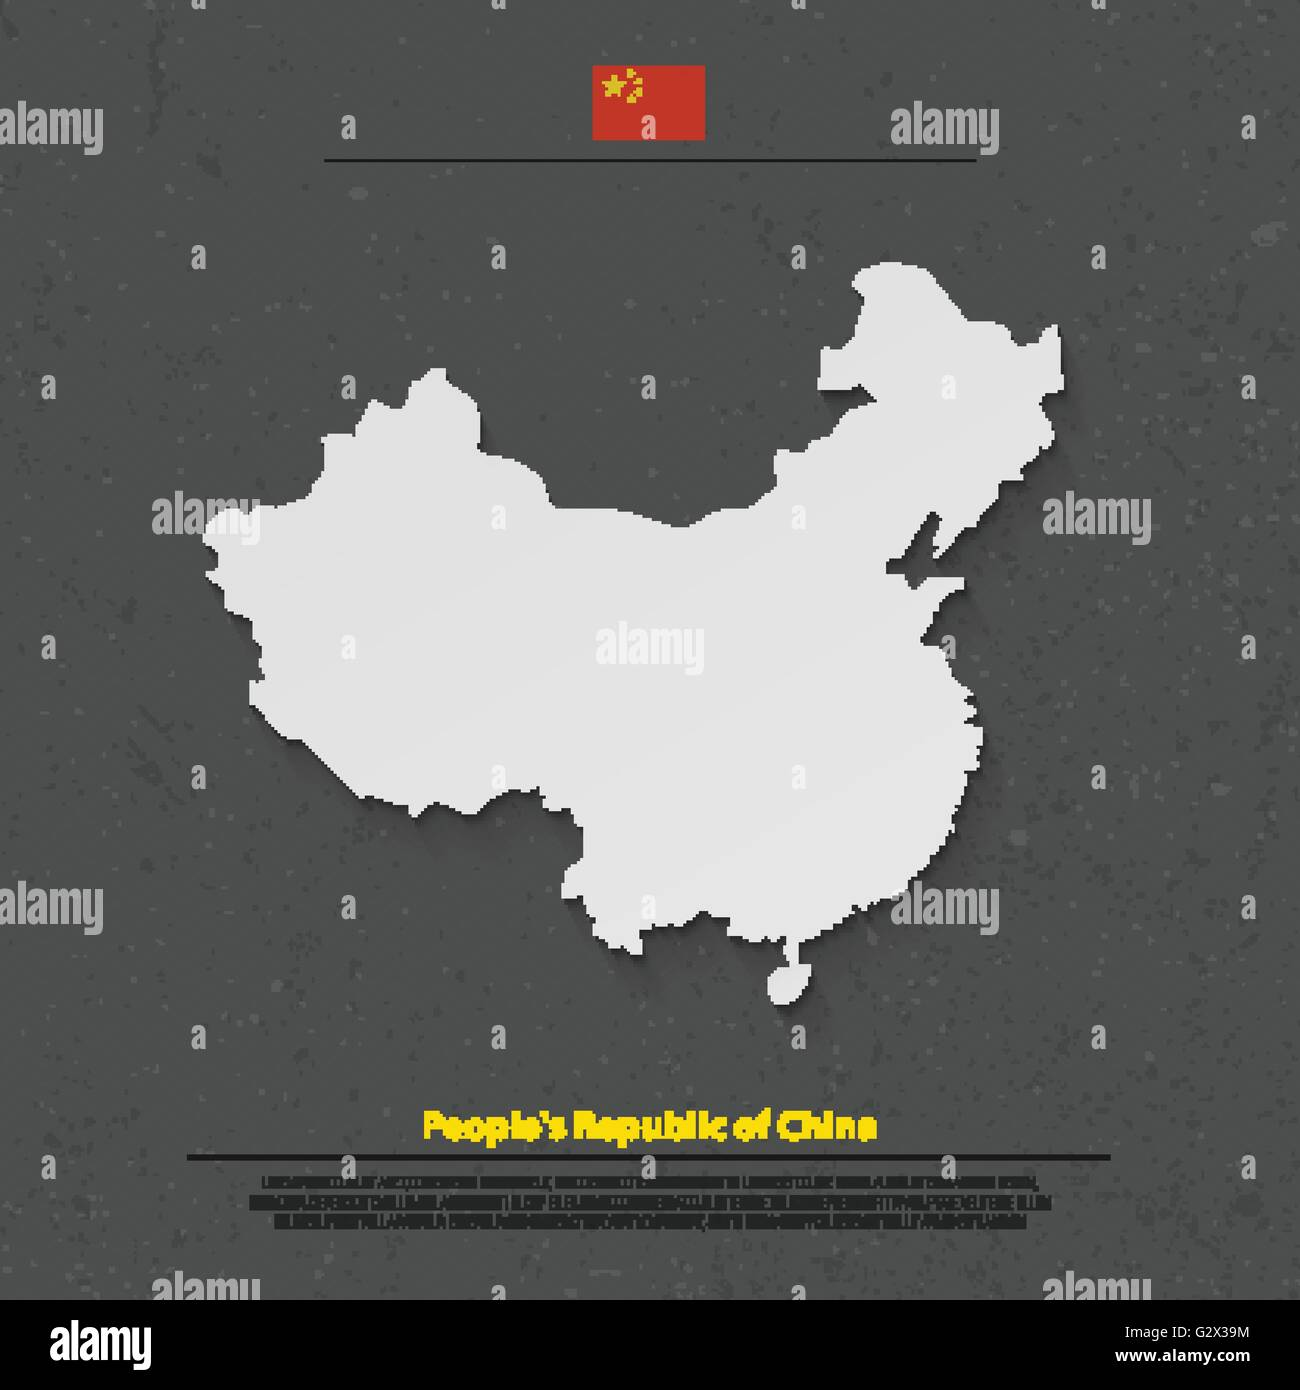 People's Republic of China isolated map and official flag icons. vector Chinese political map 3d illustration. - Stock Image